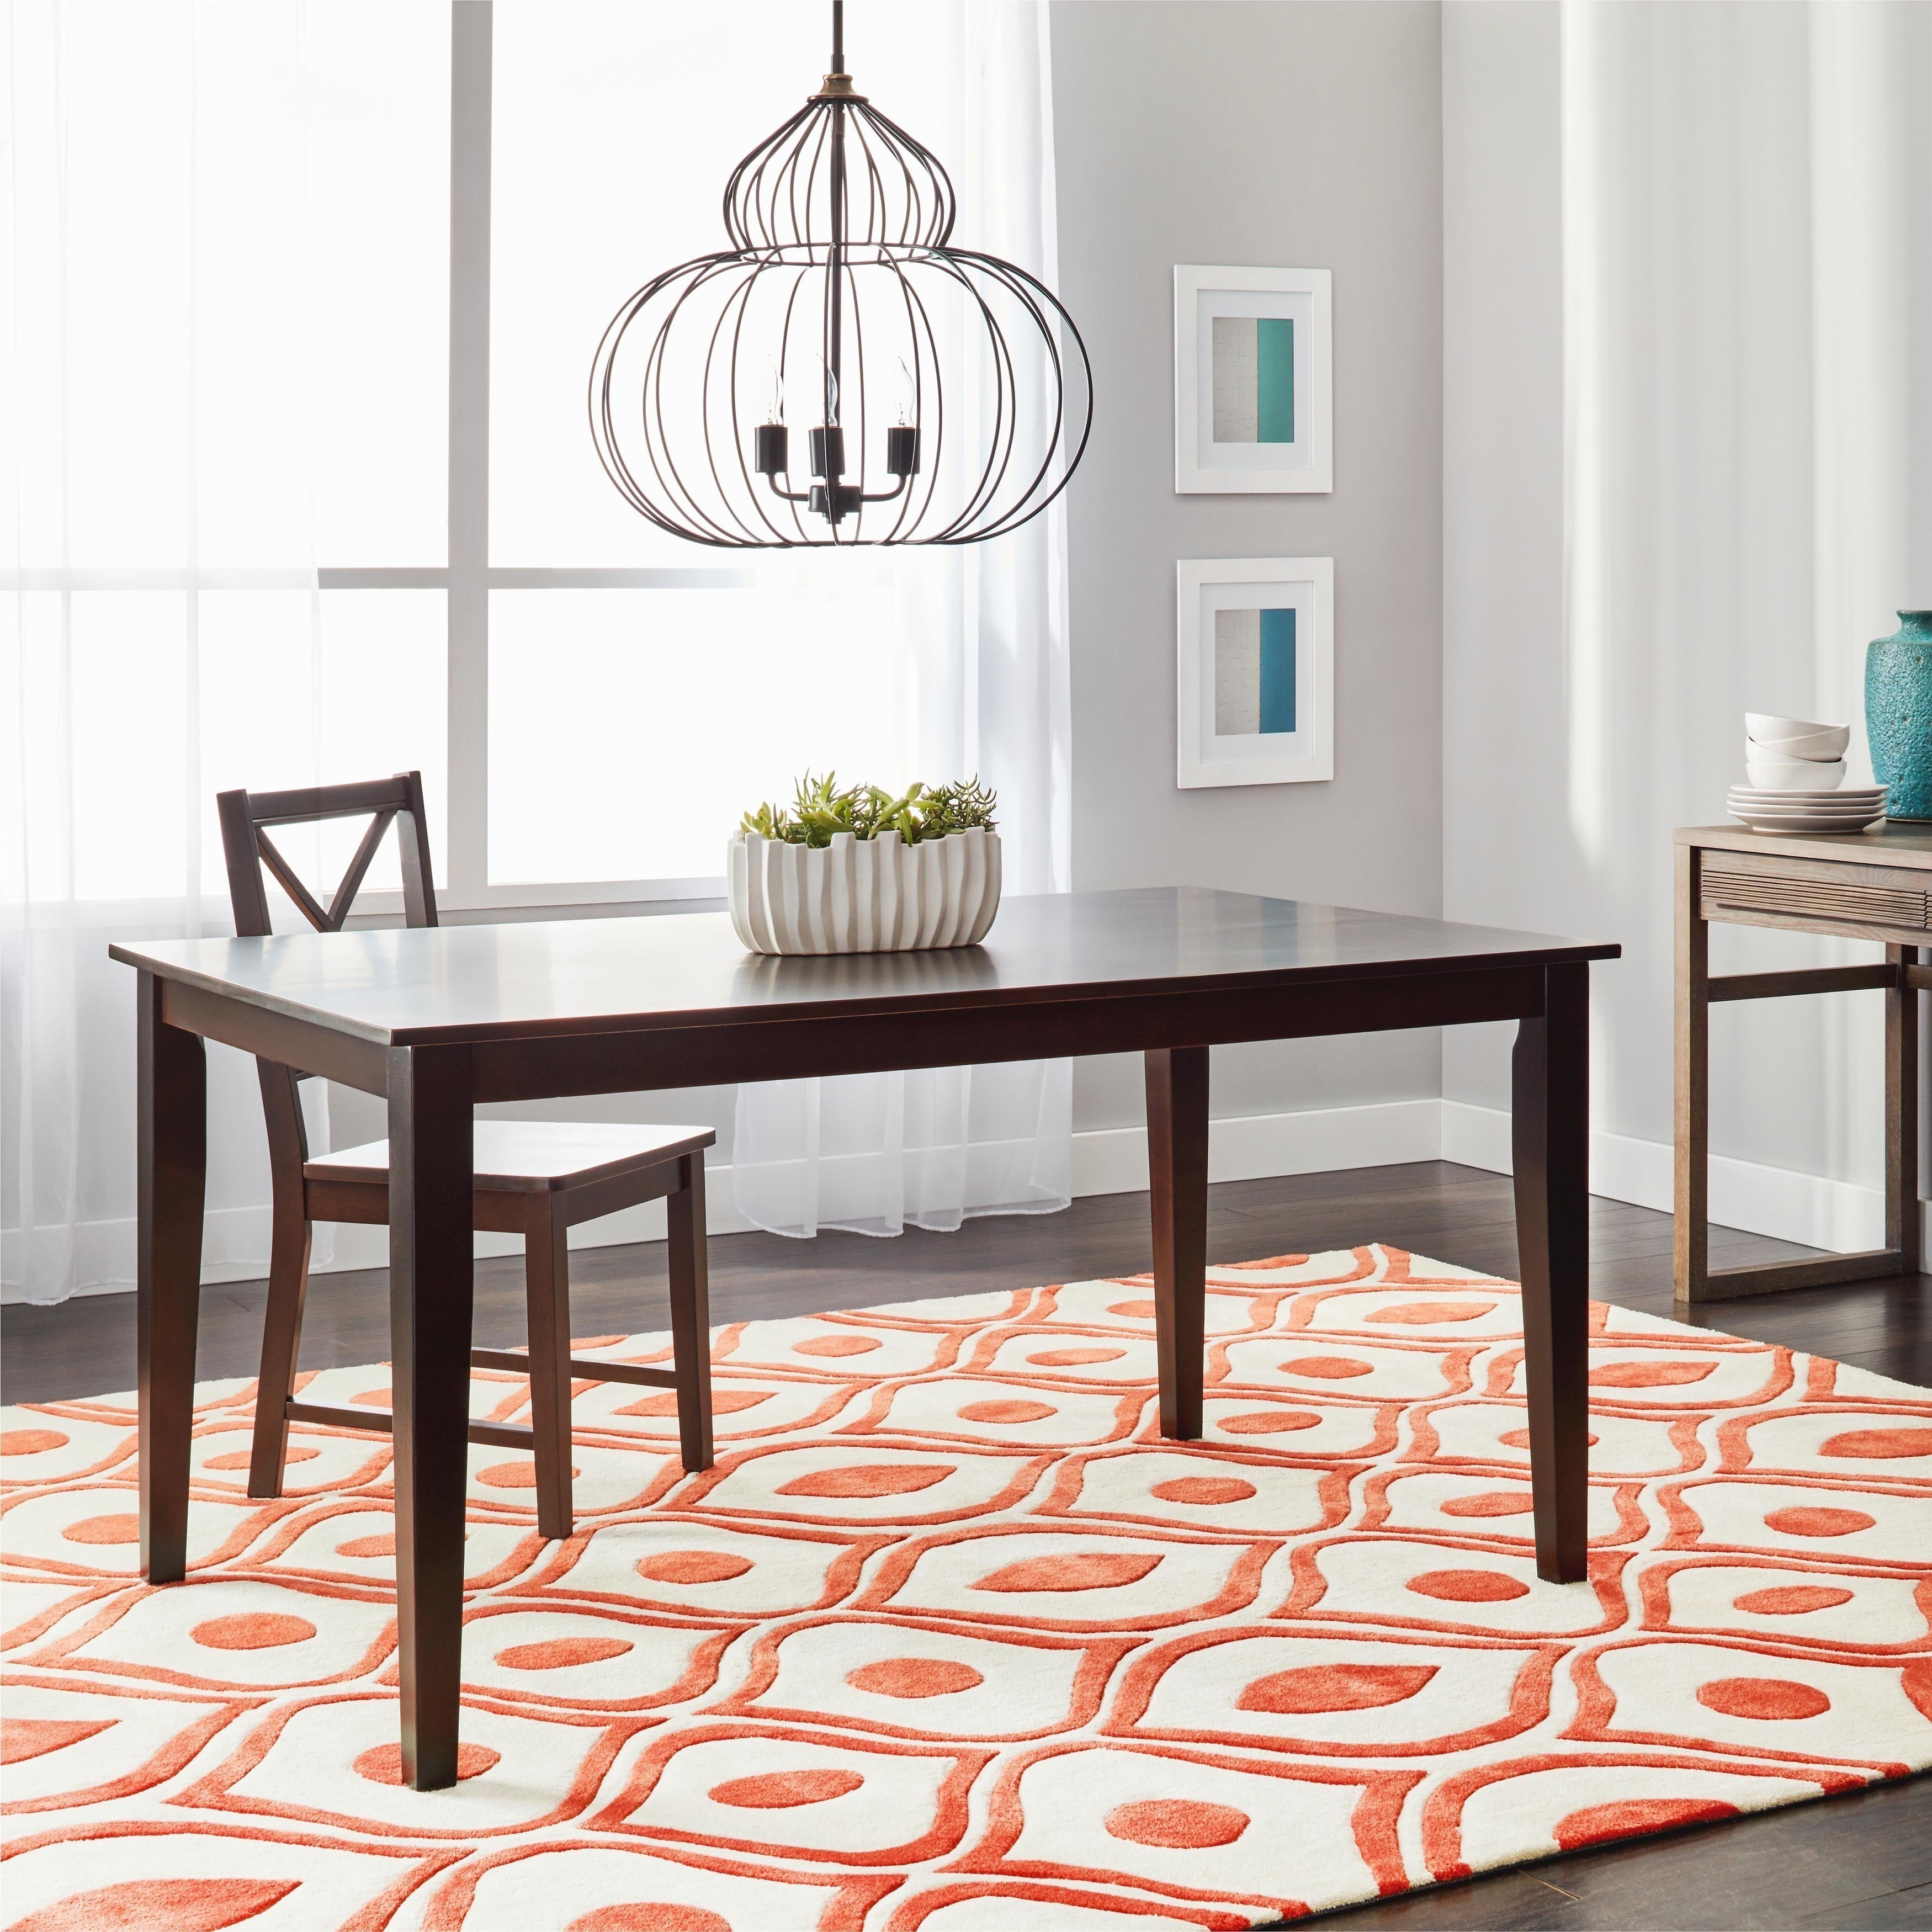 Shop simple living havana carson large dining table on sale free shipping today overstock com 5967203